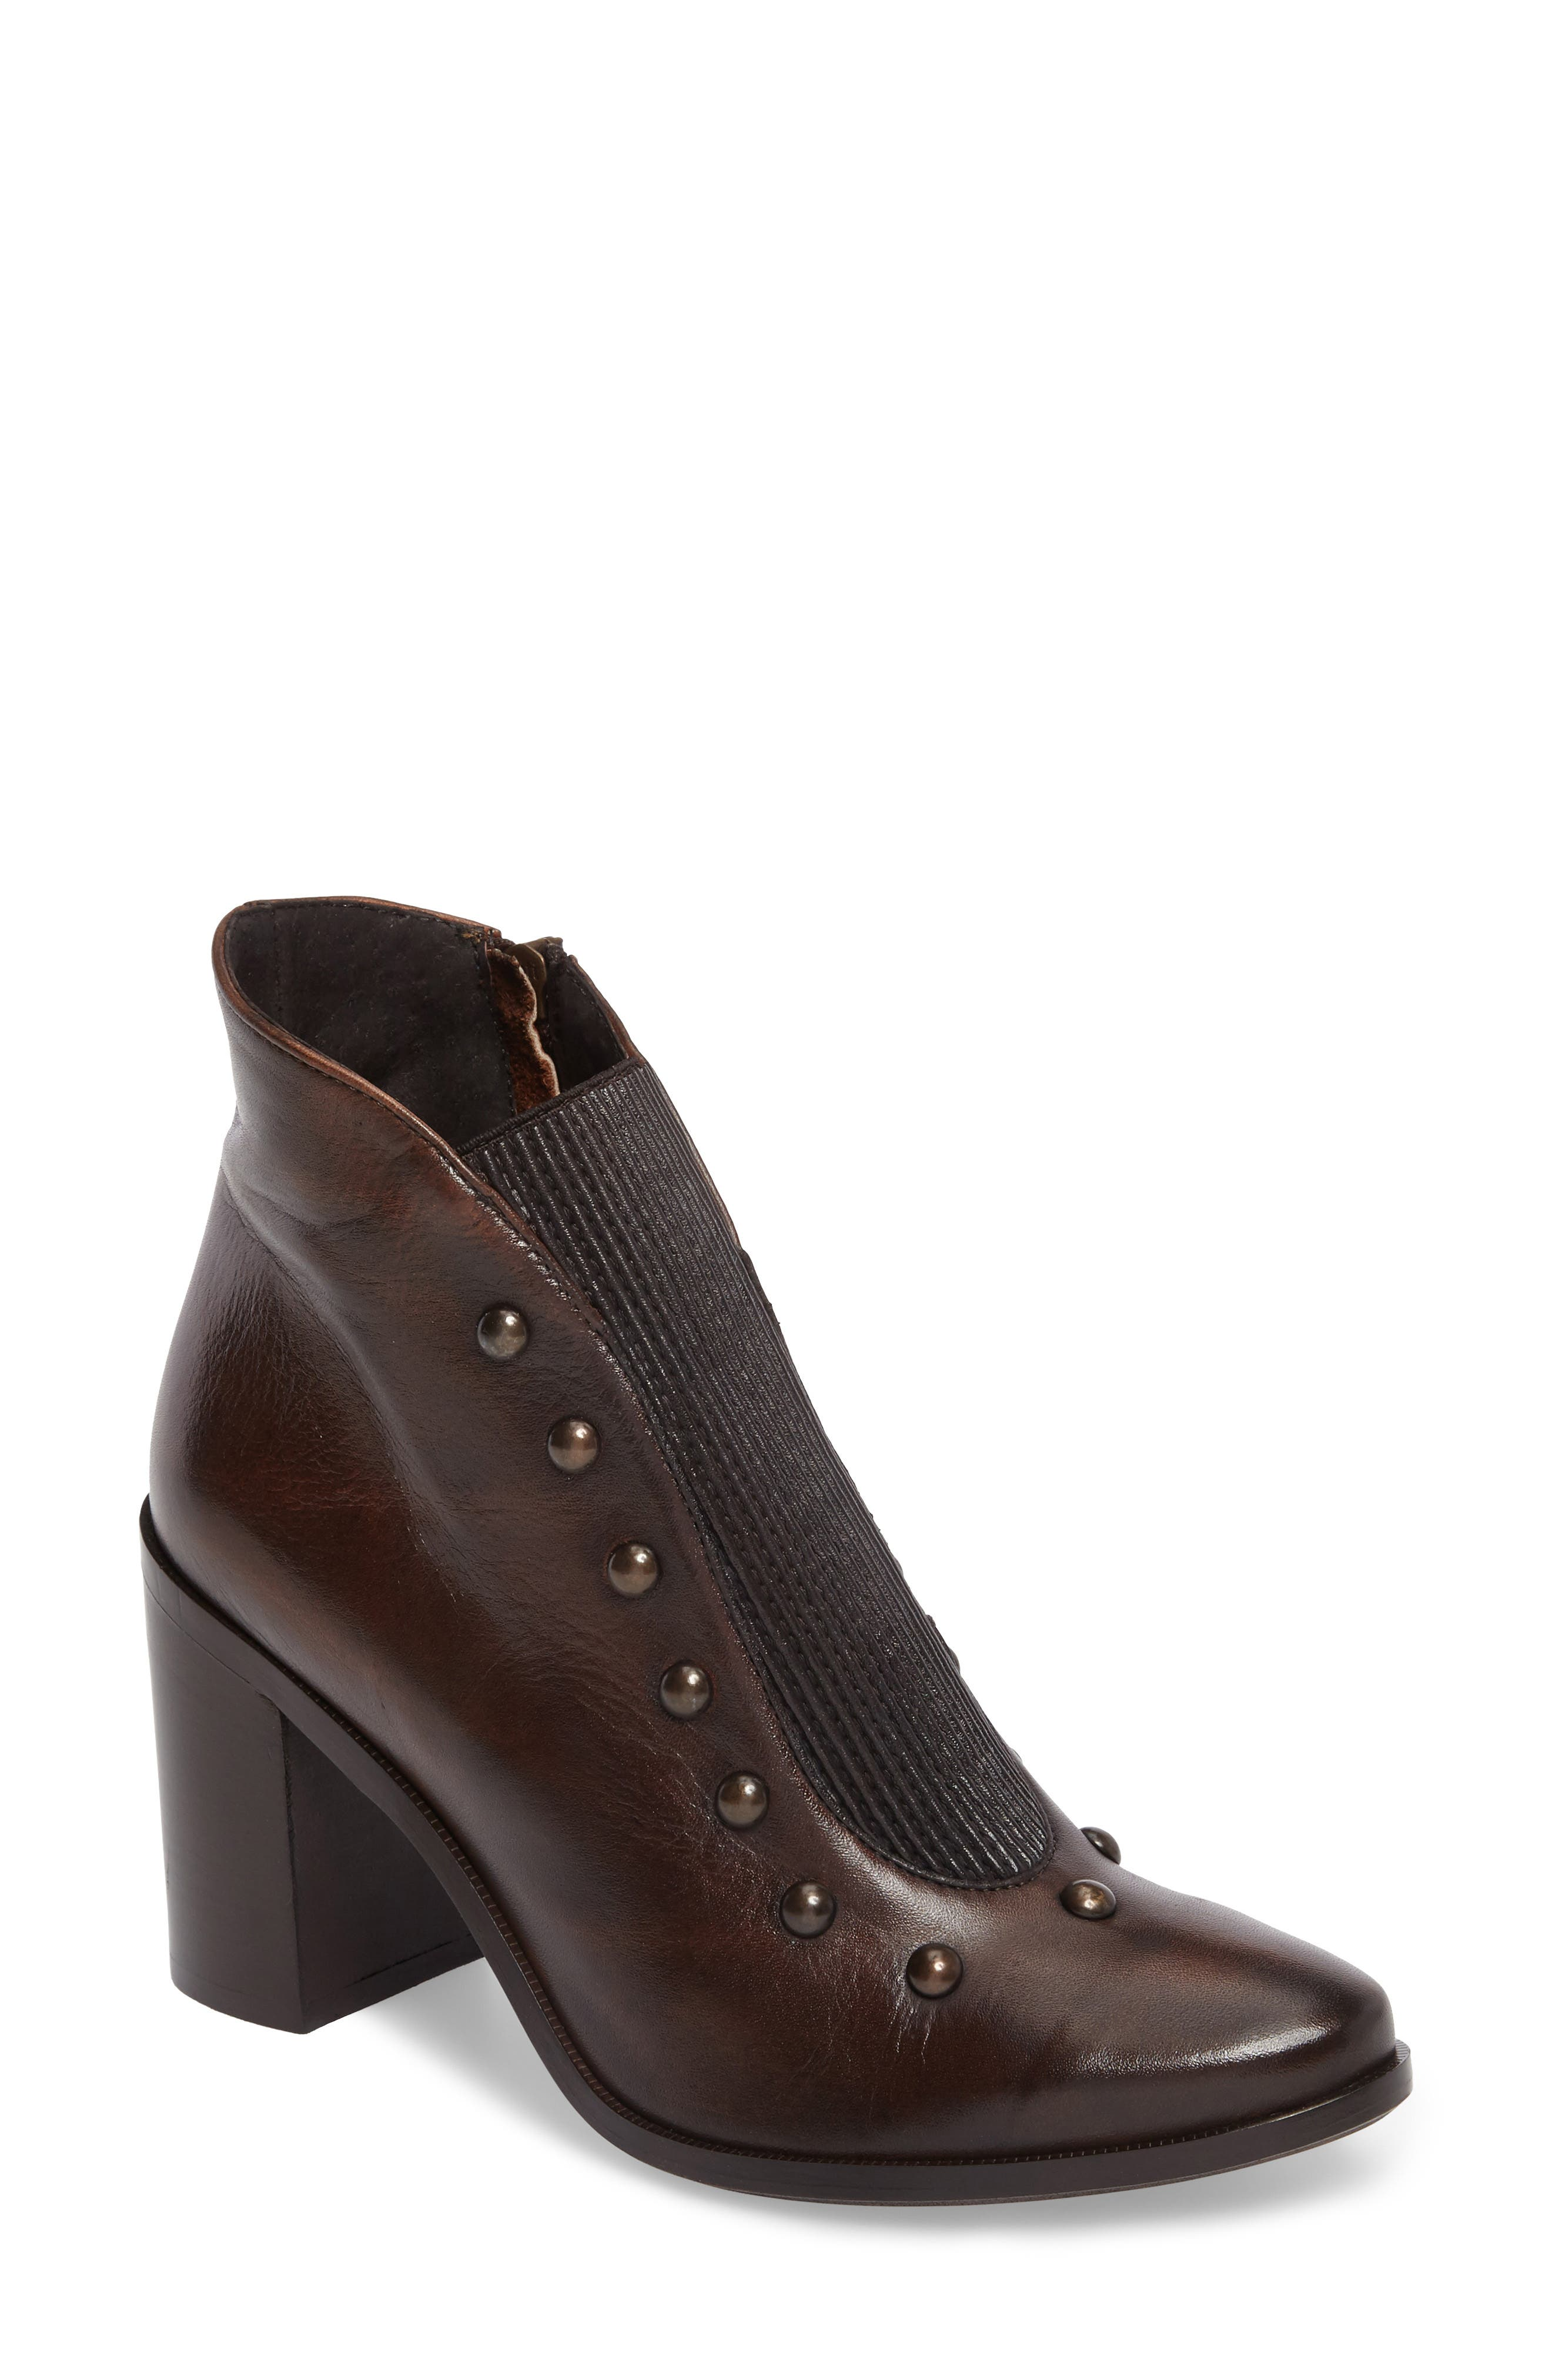 Beatrix Studded Bootie,                             Main thumbnail 1, color,                             Deer Leather